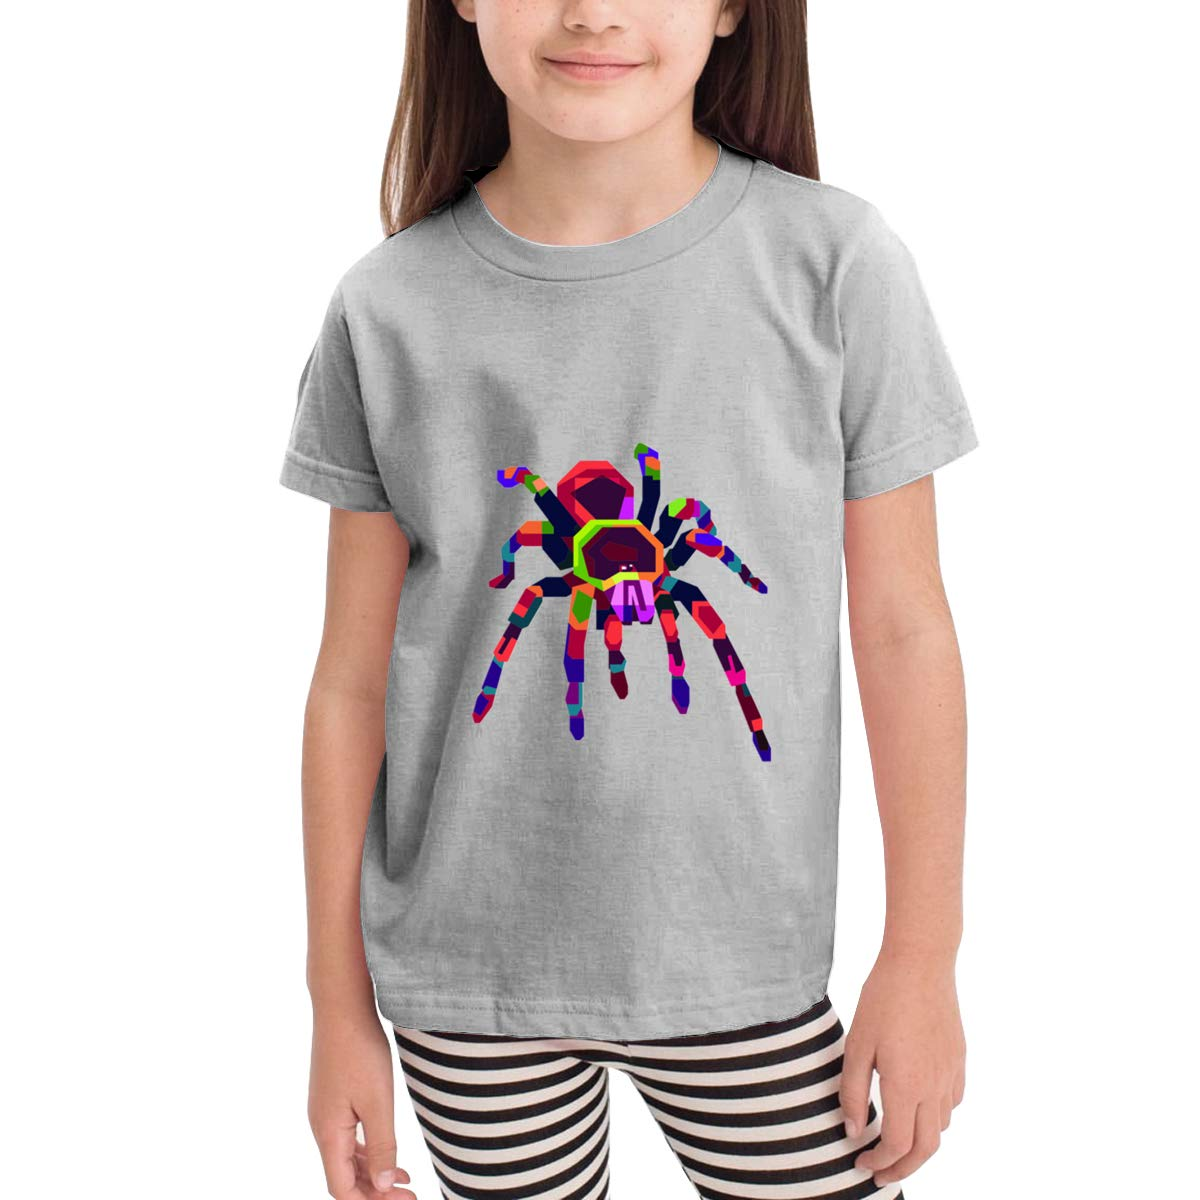 Onlybabycare Colorful Tarantula 100/% Cotton Toddler Baby Boys Girls Kids Short Sleeve T Shirt Top Tee Clothes 2-6 T